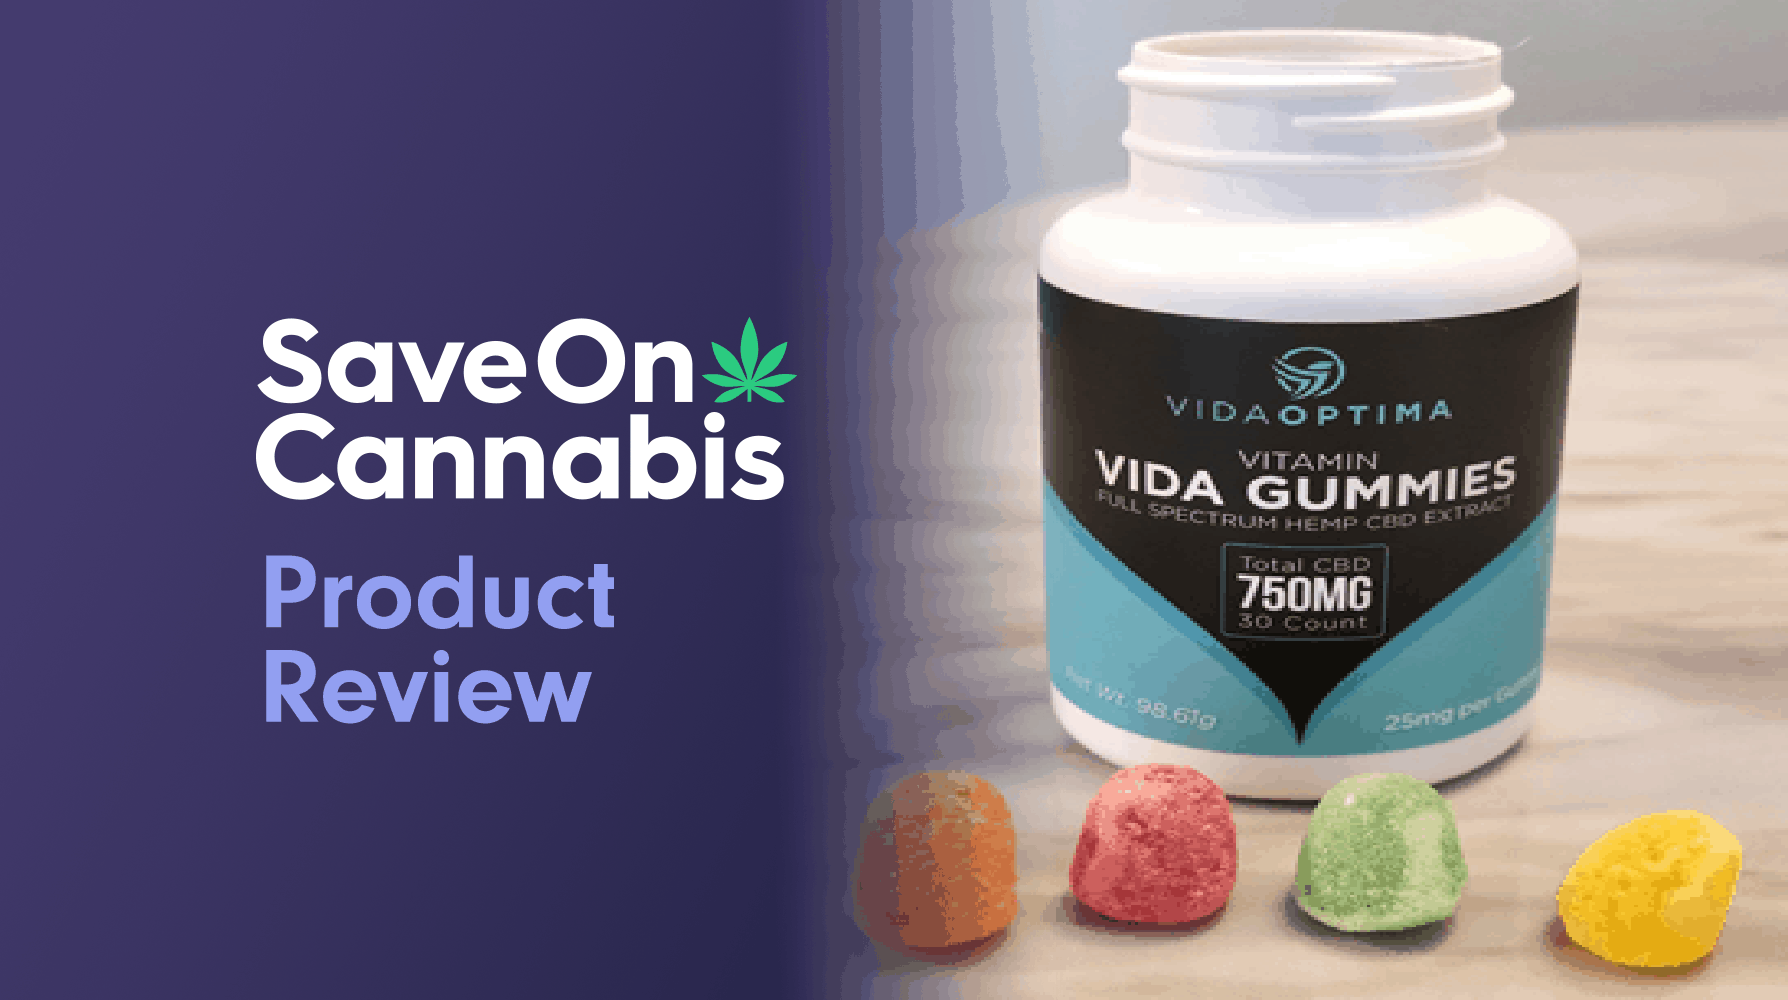 Vida Optima Vitamin Gummies Save On Cannabis Review Website